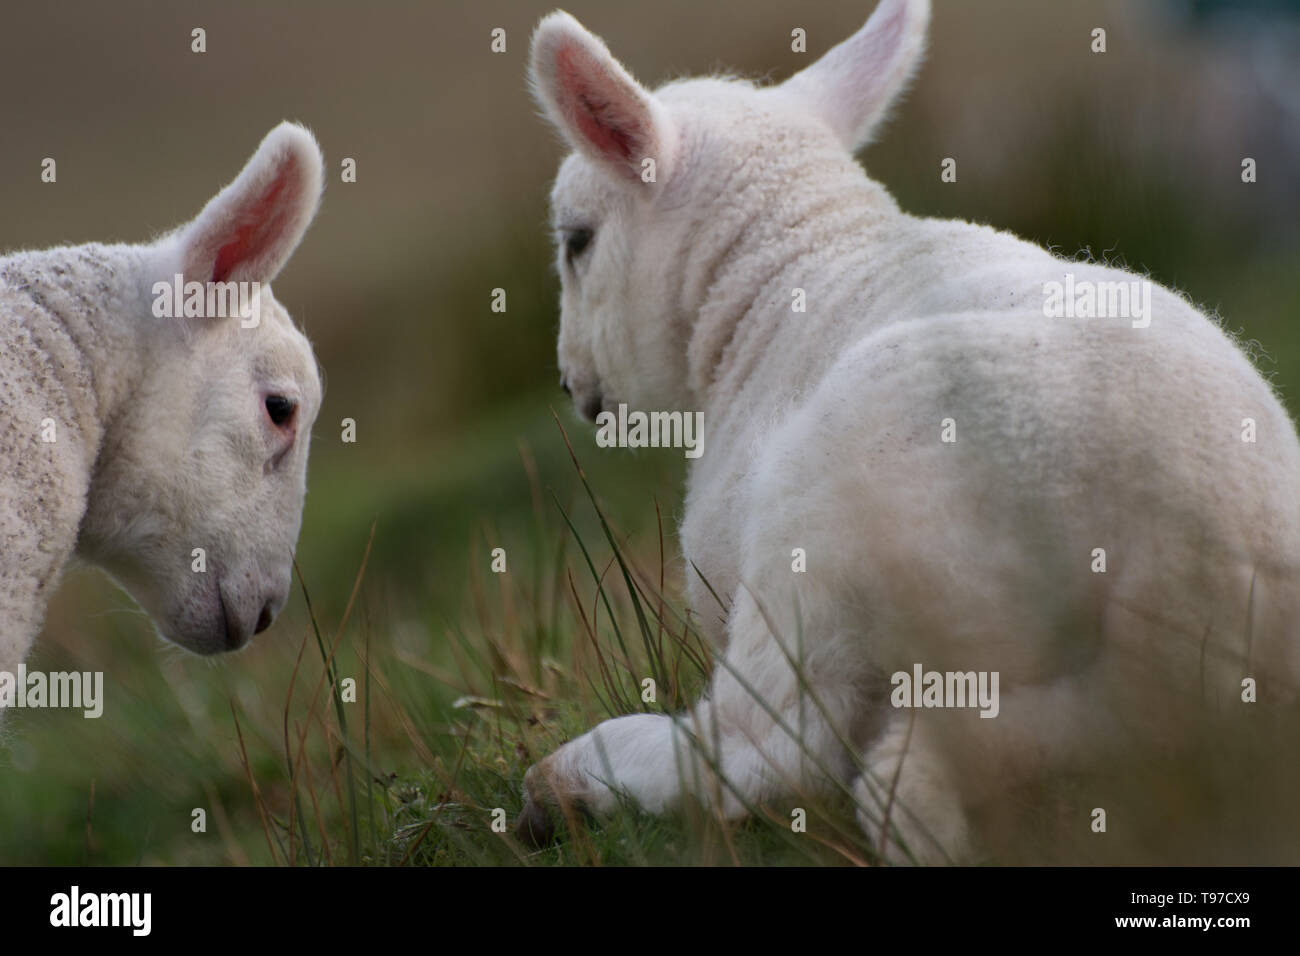 Cute Scottish lambs - Stock Image